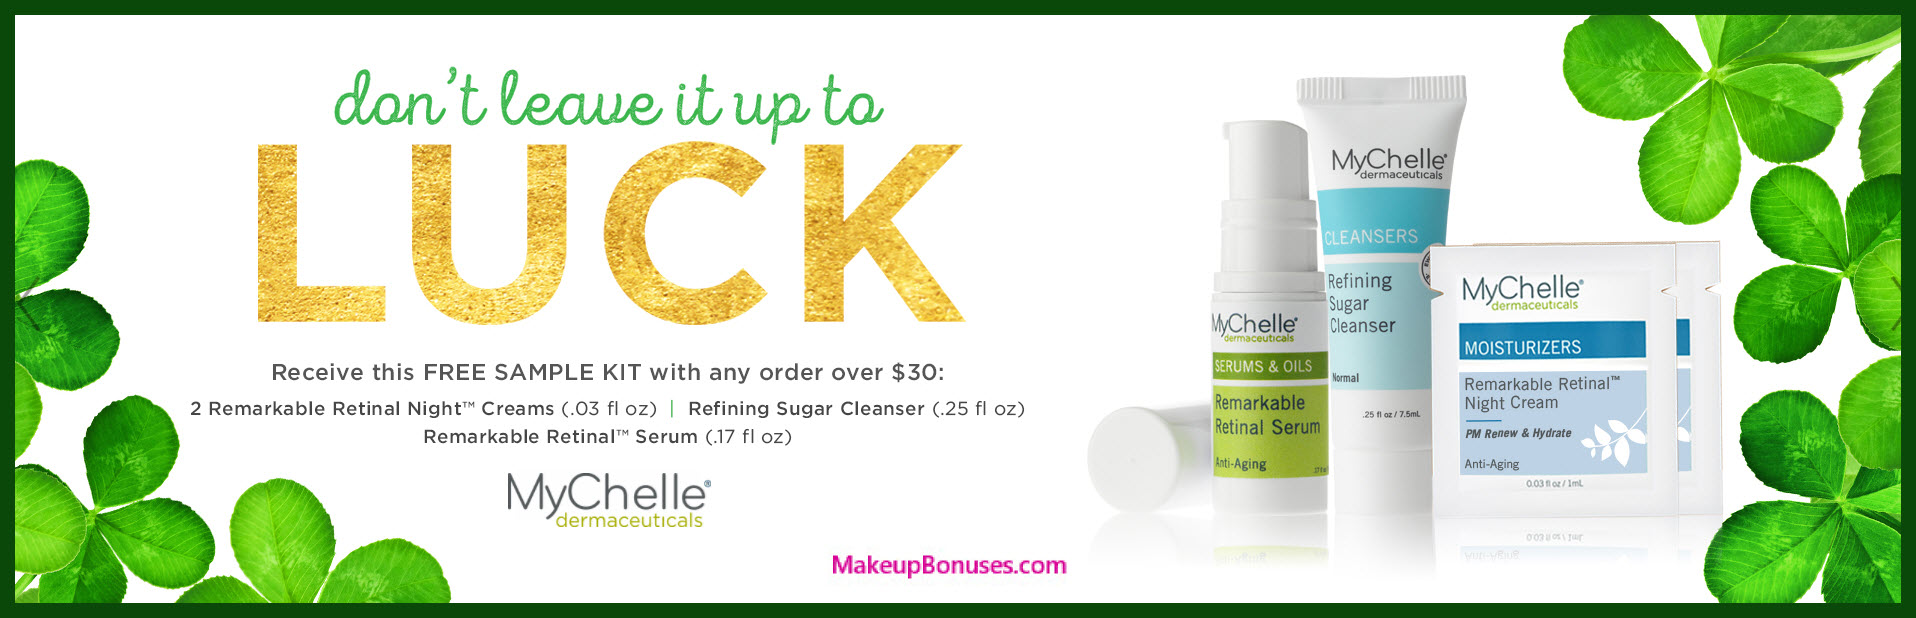 Receive a free 4-pc gift with $30 MyChelle purchase